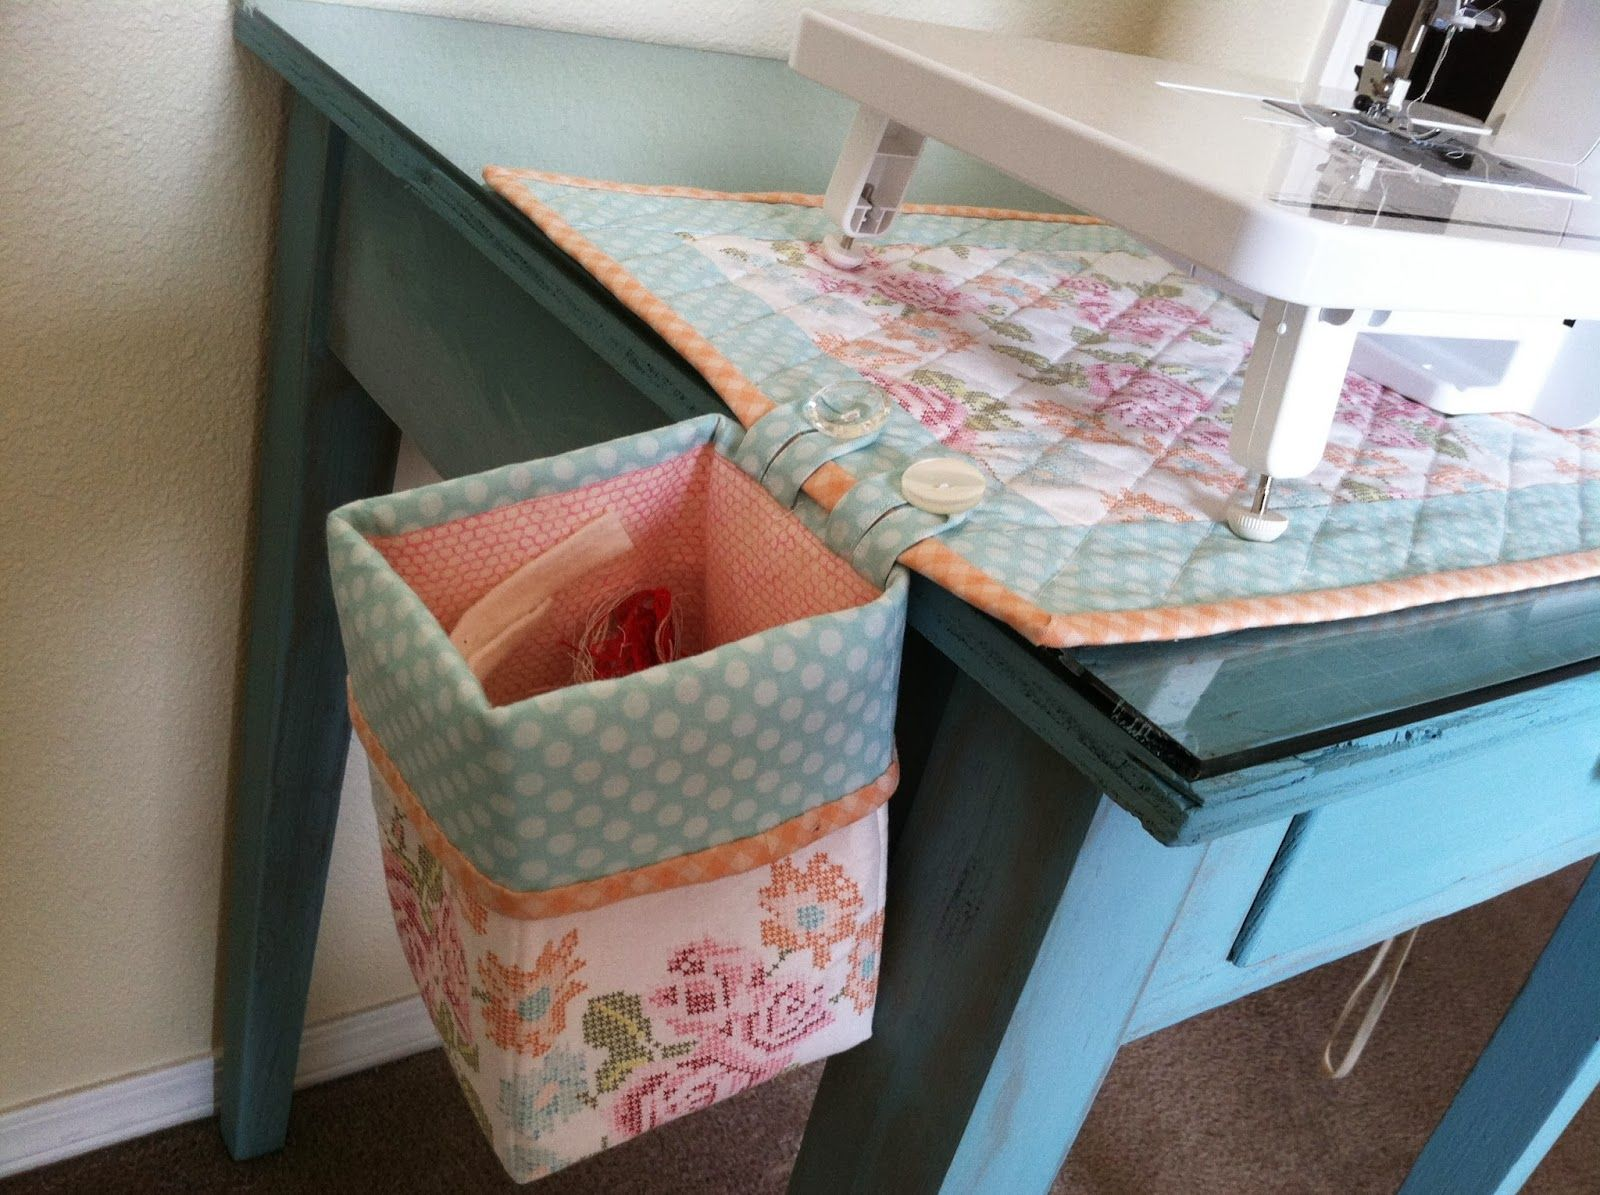 Attached Trash Bin For Sewing SewingCraft Room